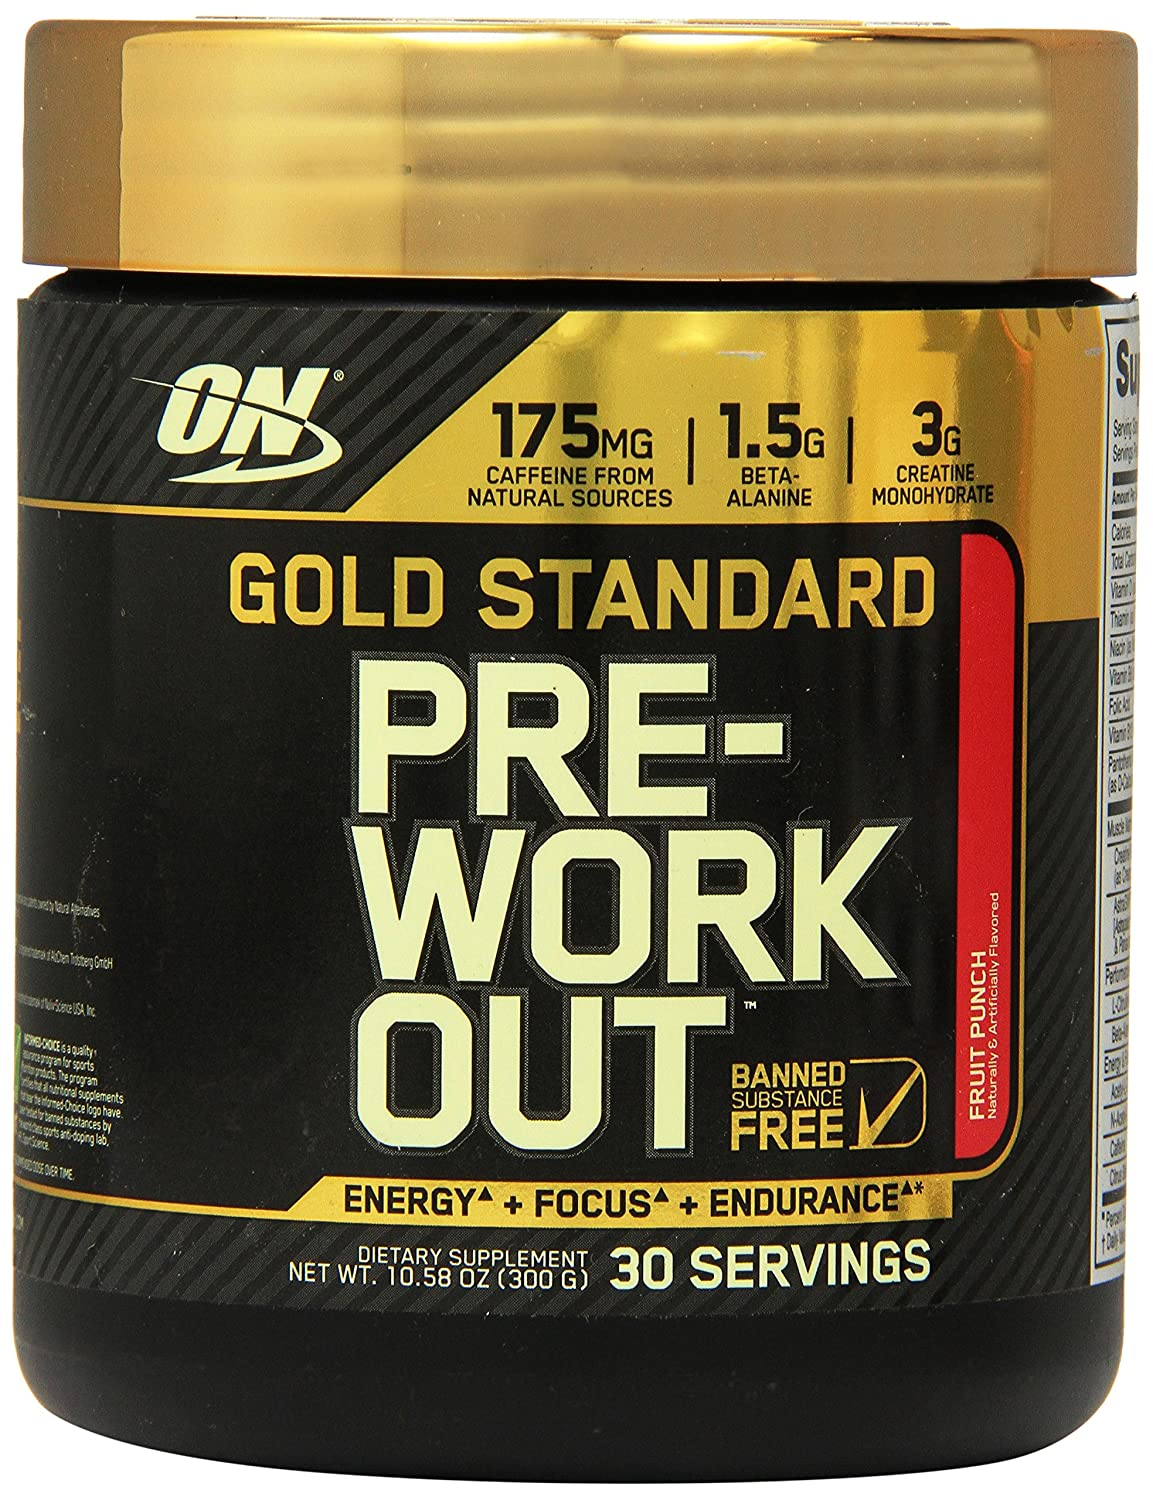 Optimum Nutrition pre workout reviews